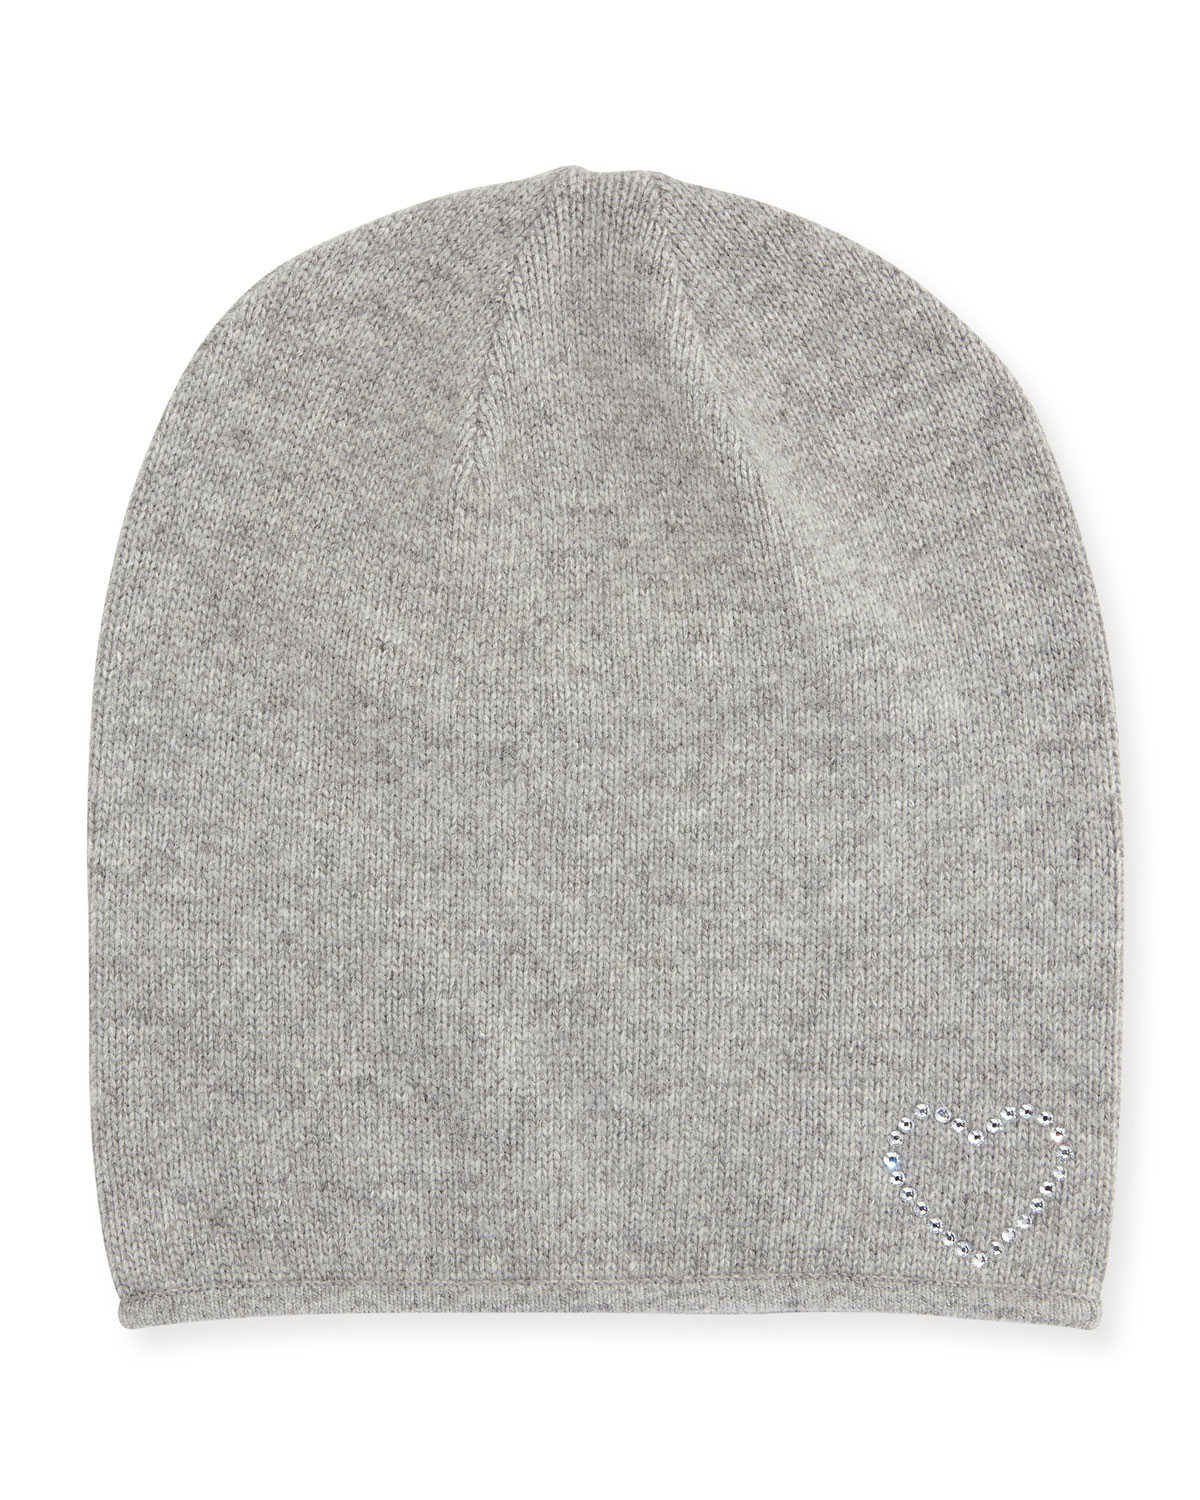 3a89371d1 Portolano - Gray Wool-blend Crystal Heart Slouchy Hat - Lyst